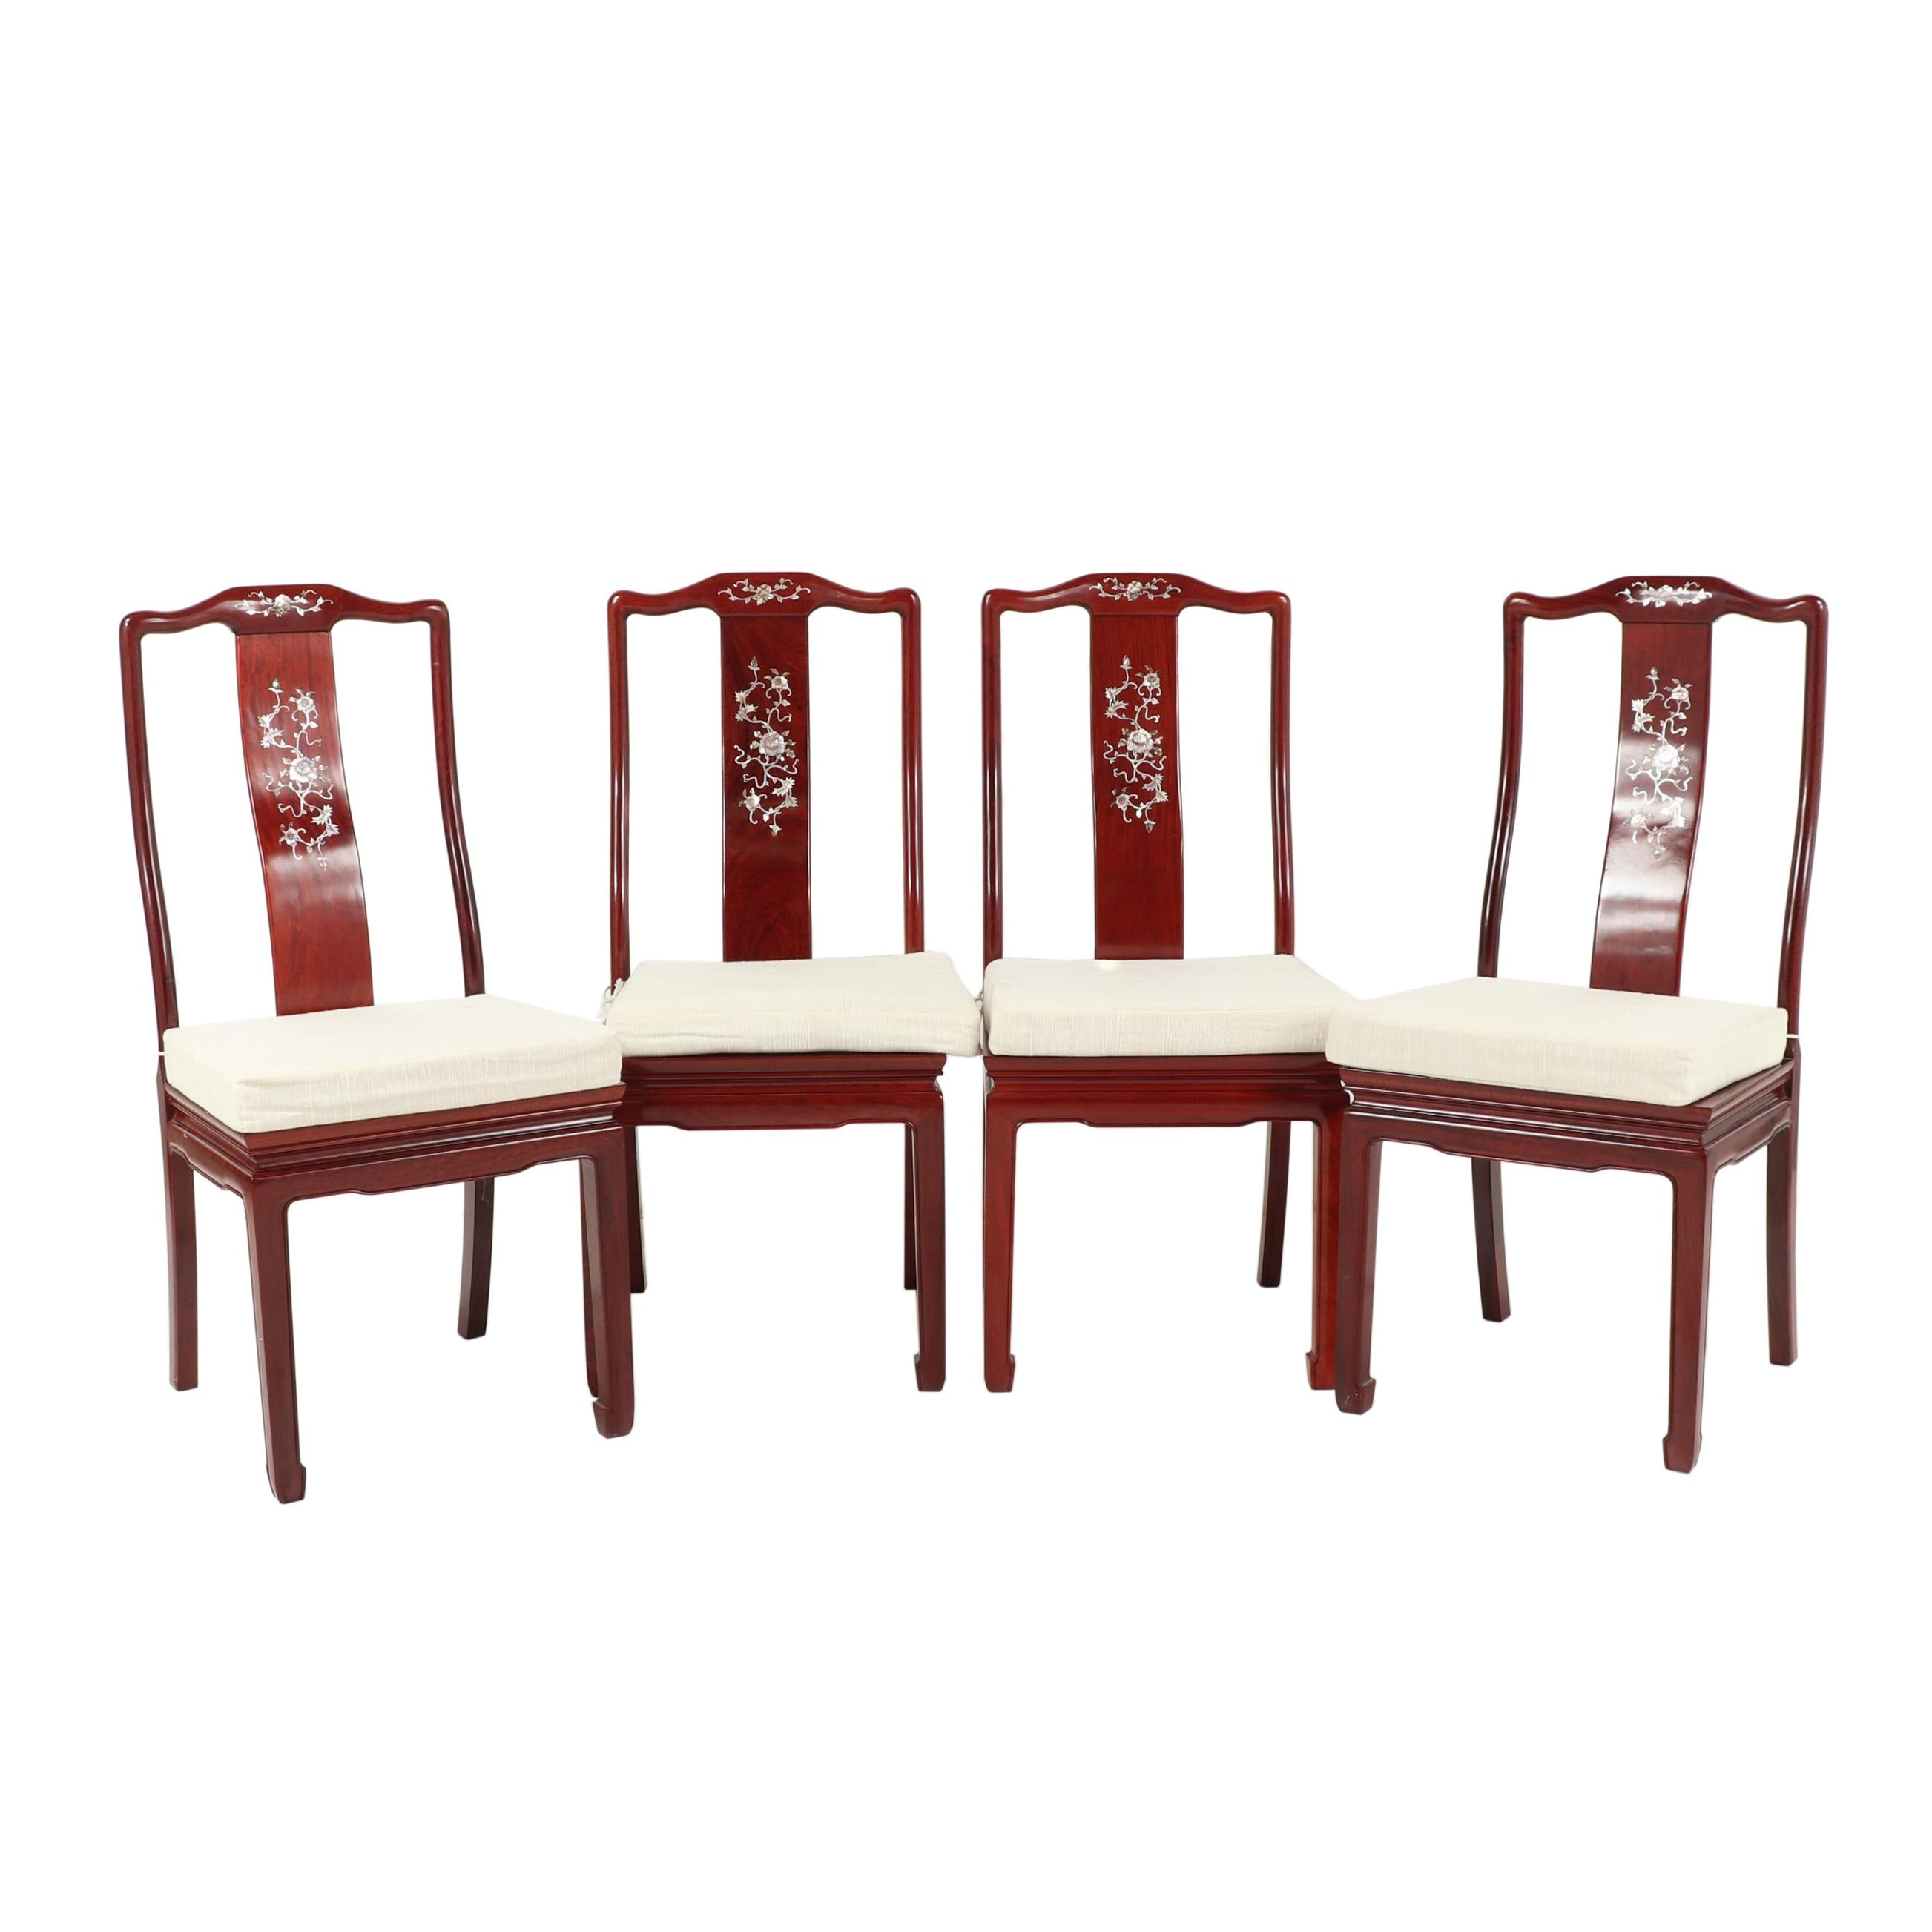 Chinese Wooden Dining Chairs with Floral Inlay, Set of Four